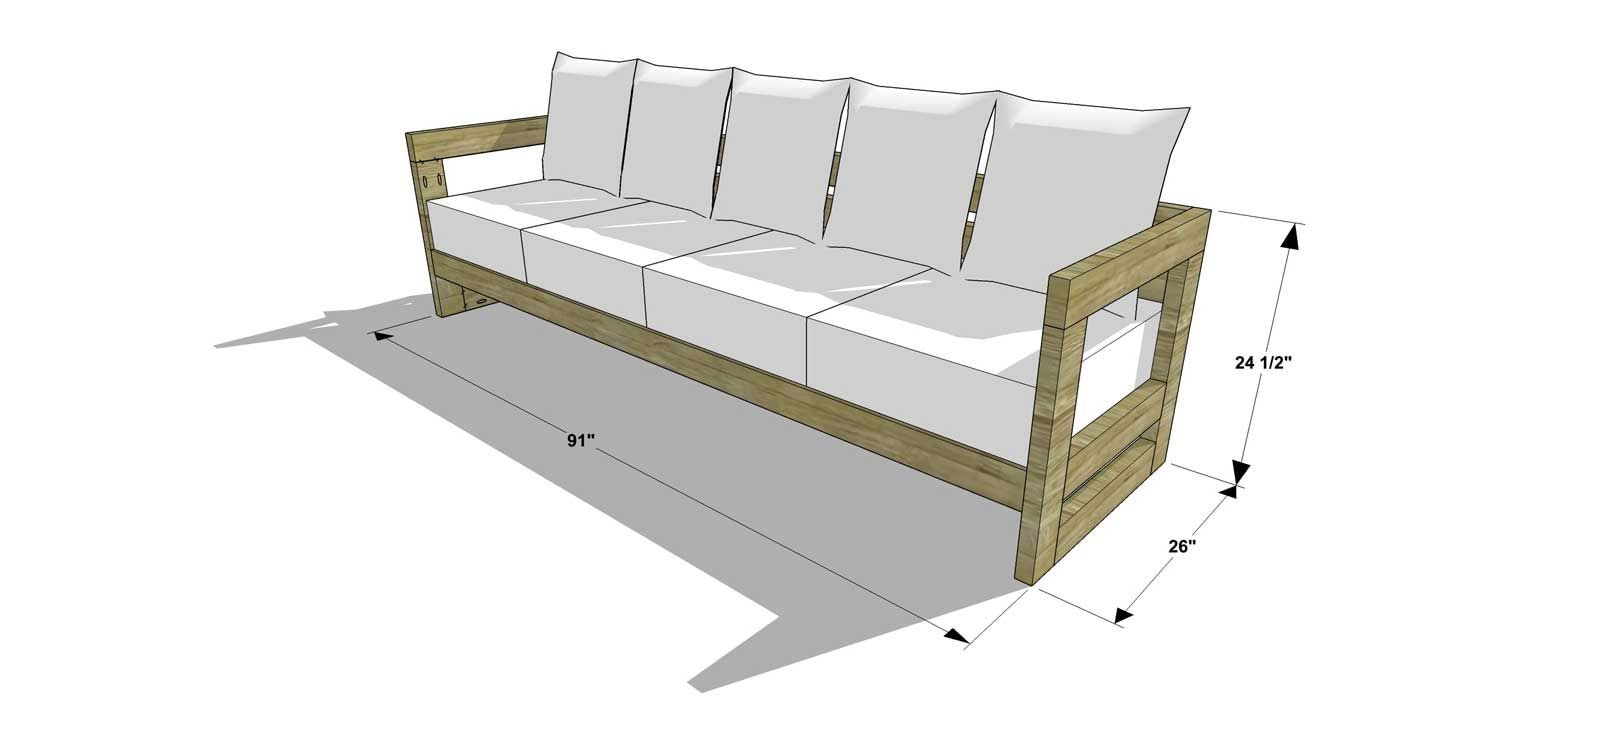 The Design Confidential DIY Furniture Plans How to Build an Aegean Outdoor Sofa  sc 1 st  Pinterest : diy sectional sofa plans - Sectionals, Sofas & Couches